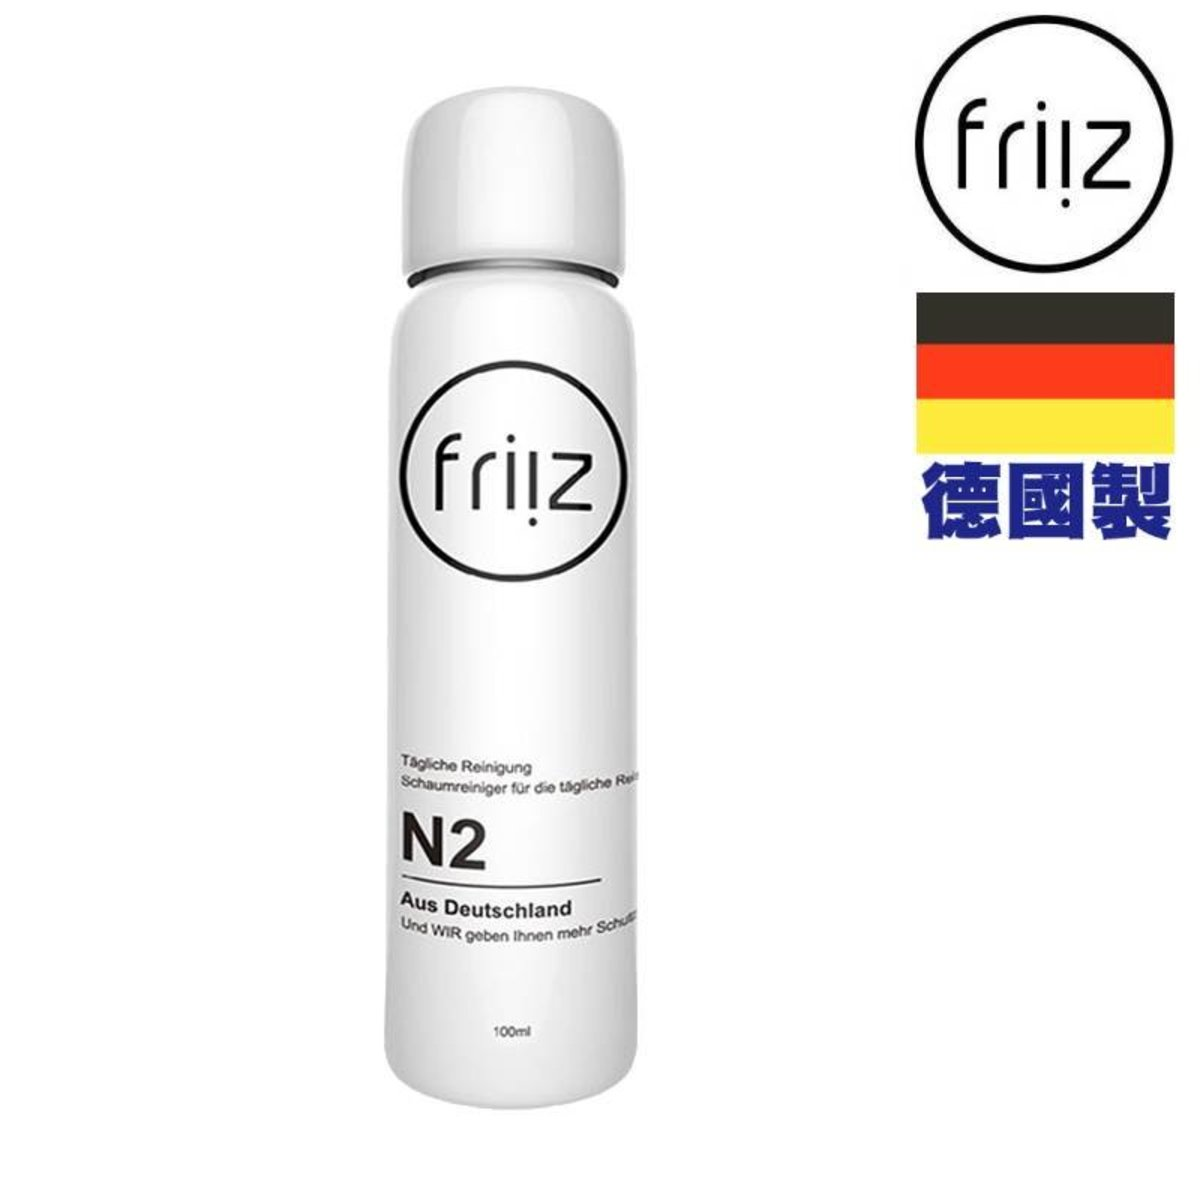 N2 strong decontamination dry foam cleaner 100ml | Made in Germany